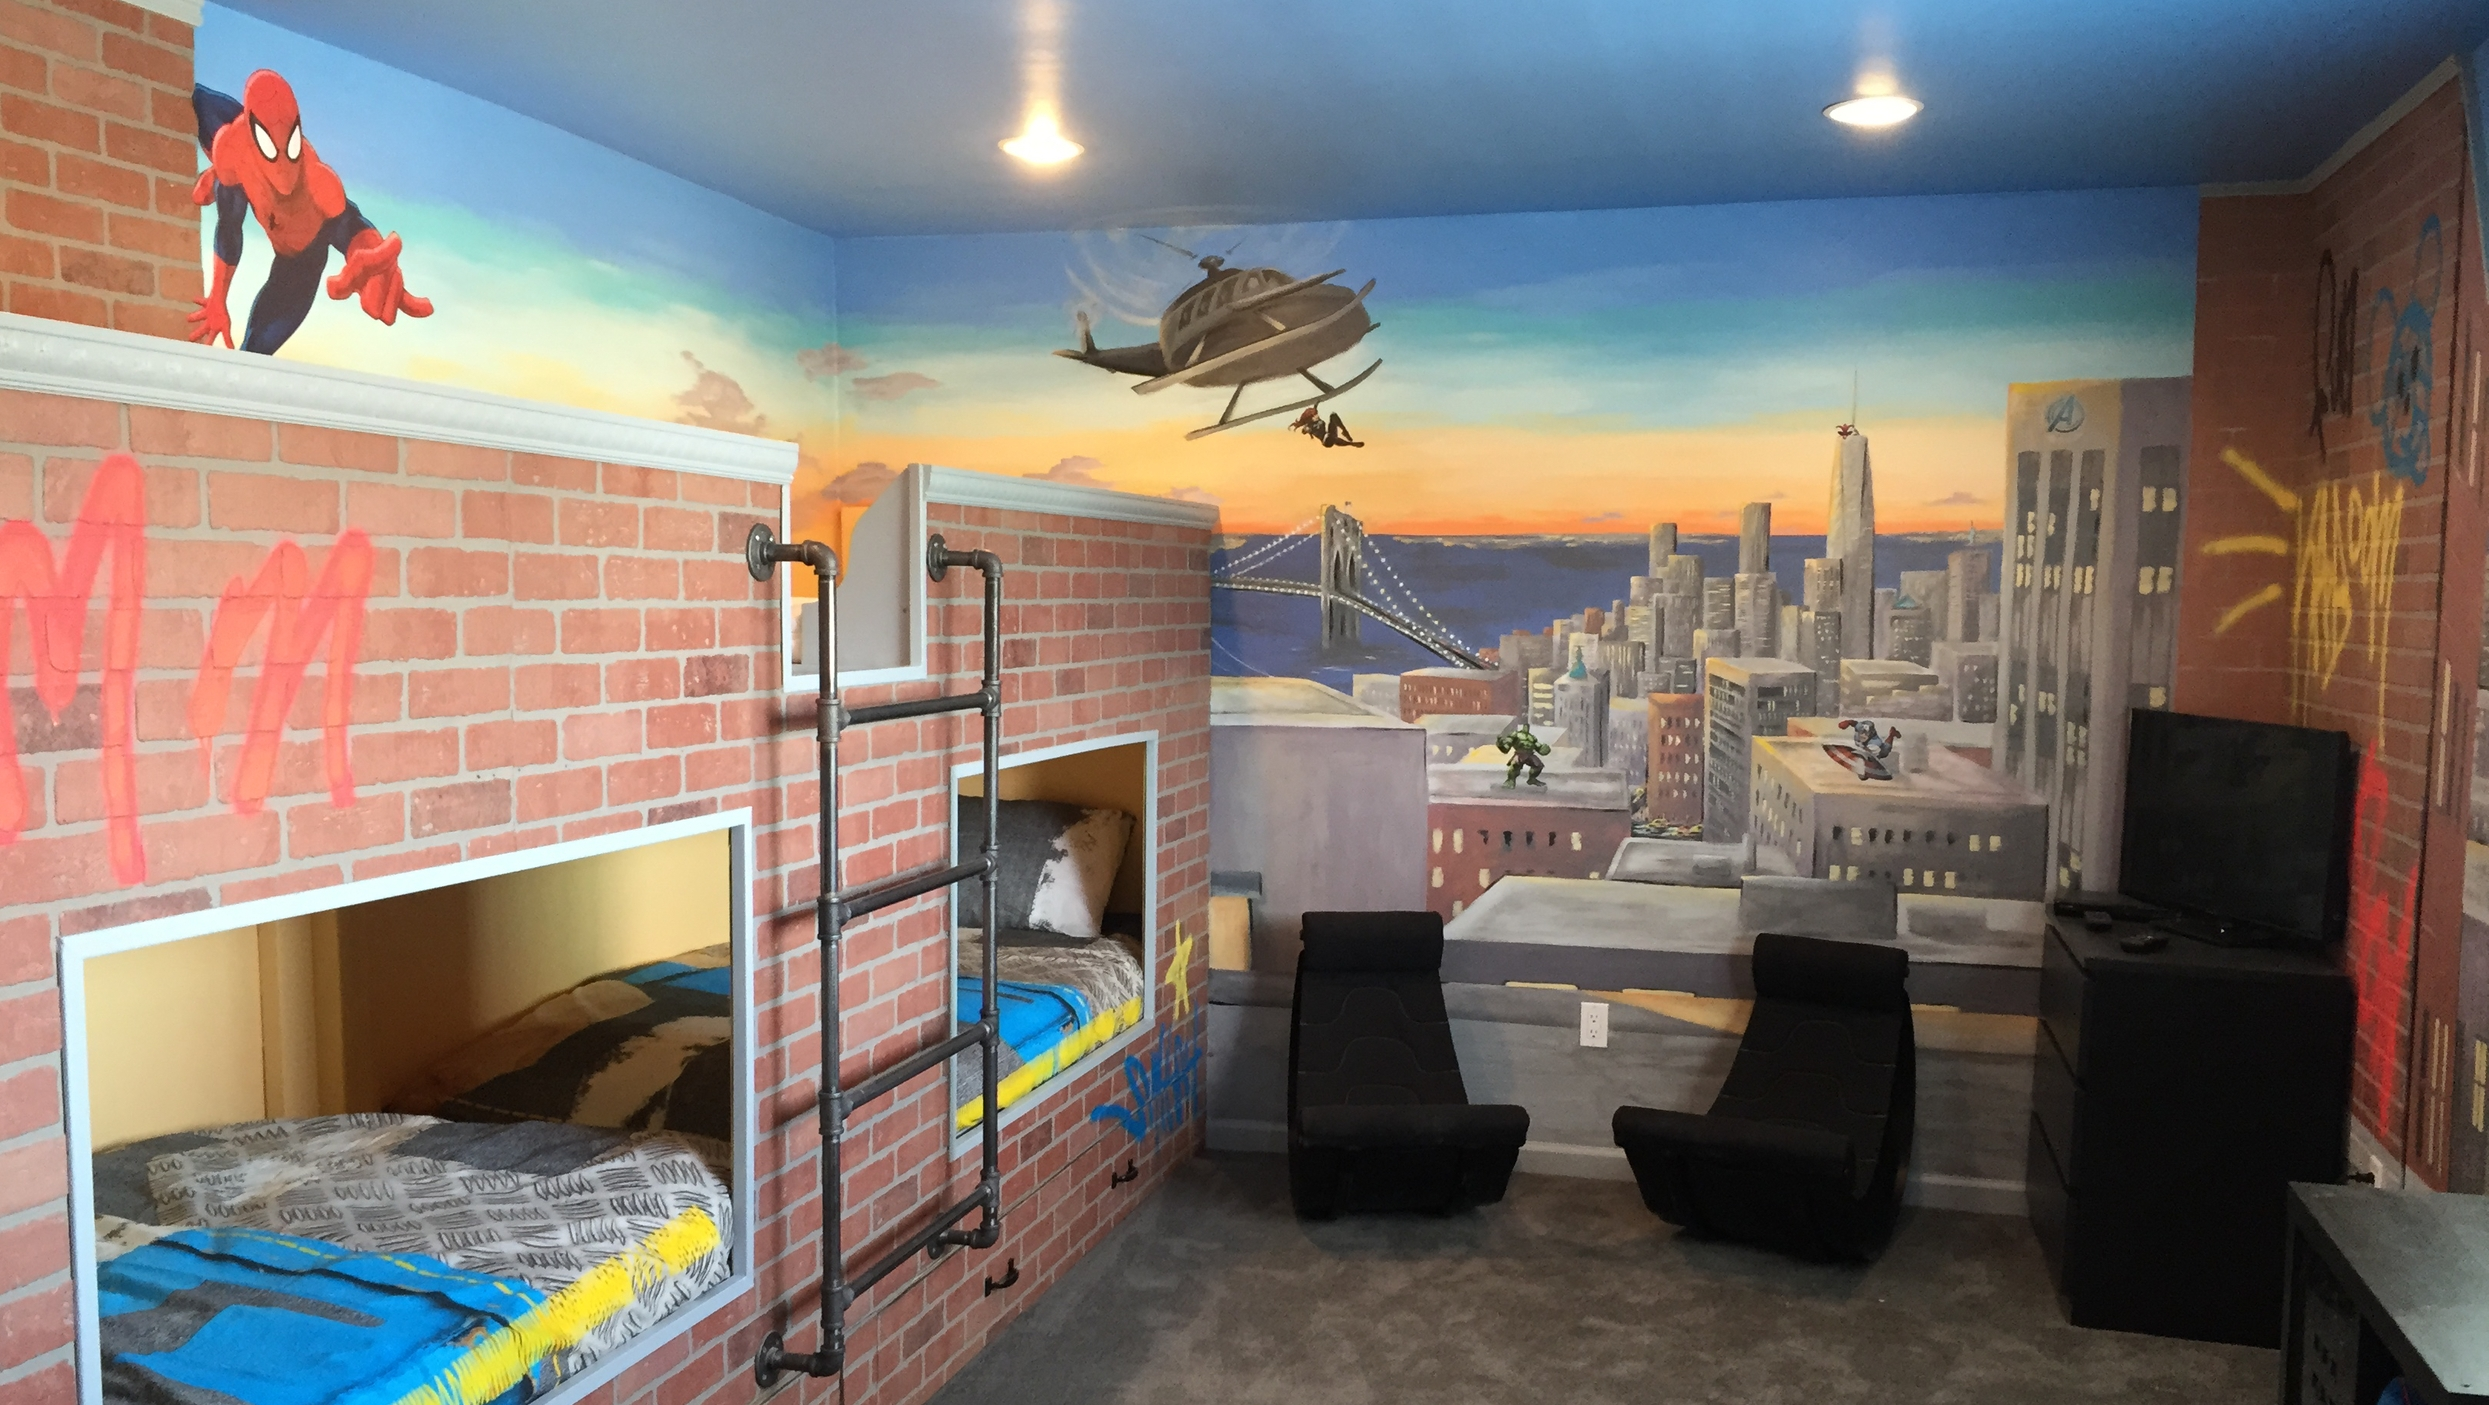 Superheroes Themed NYC Scene with Custom Designed Bunk Beds and Graffiti